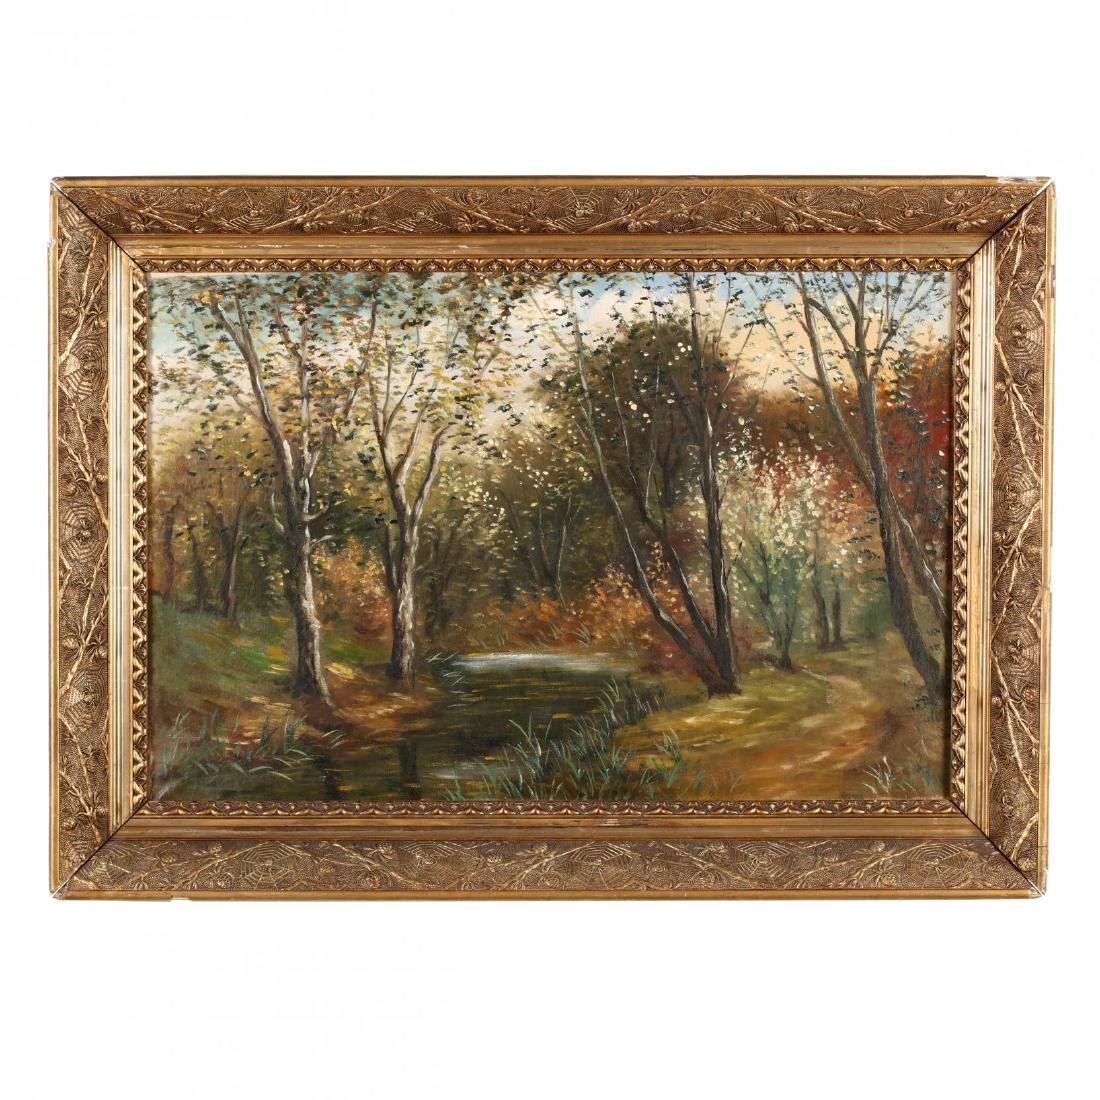 An Antique American School Painting of a Forest